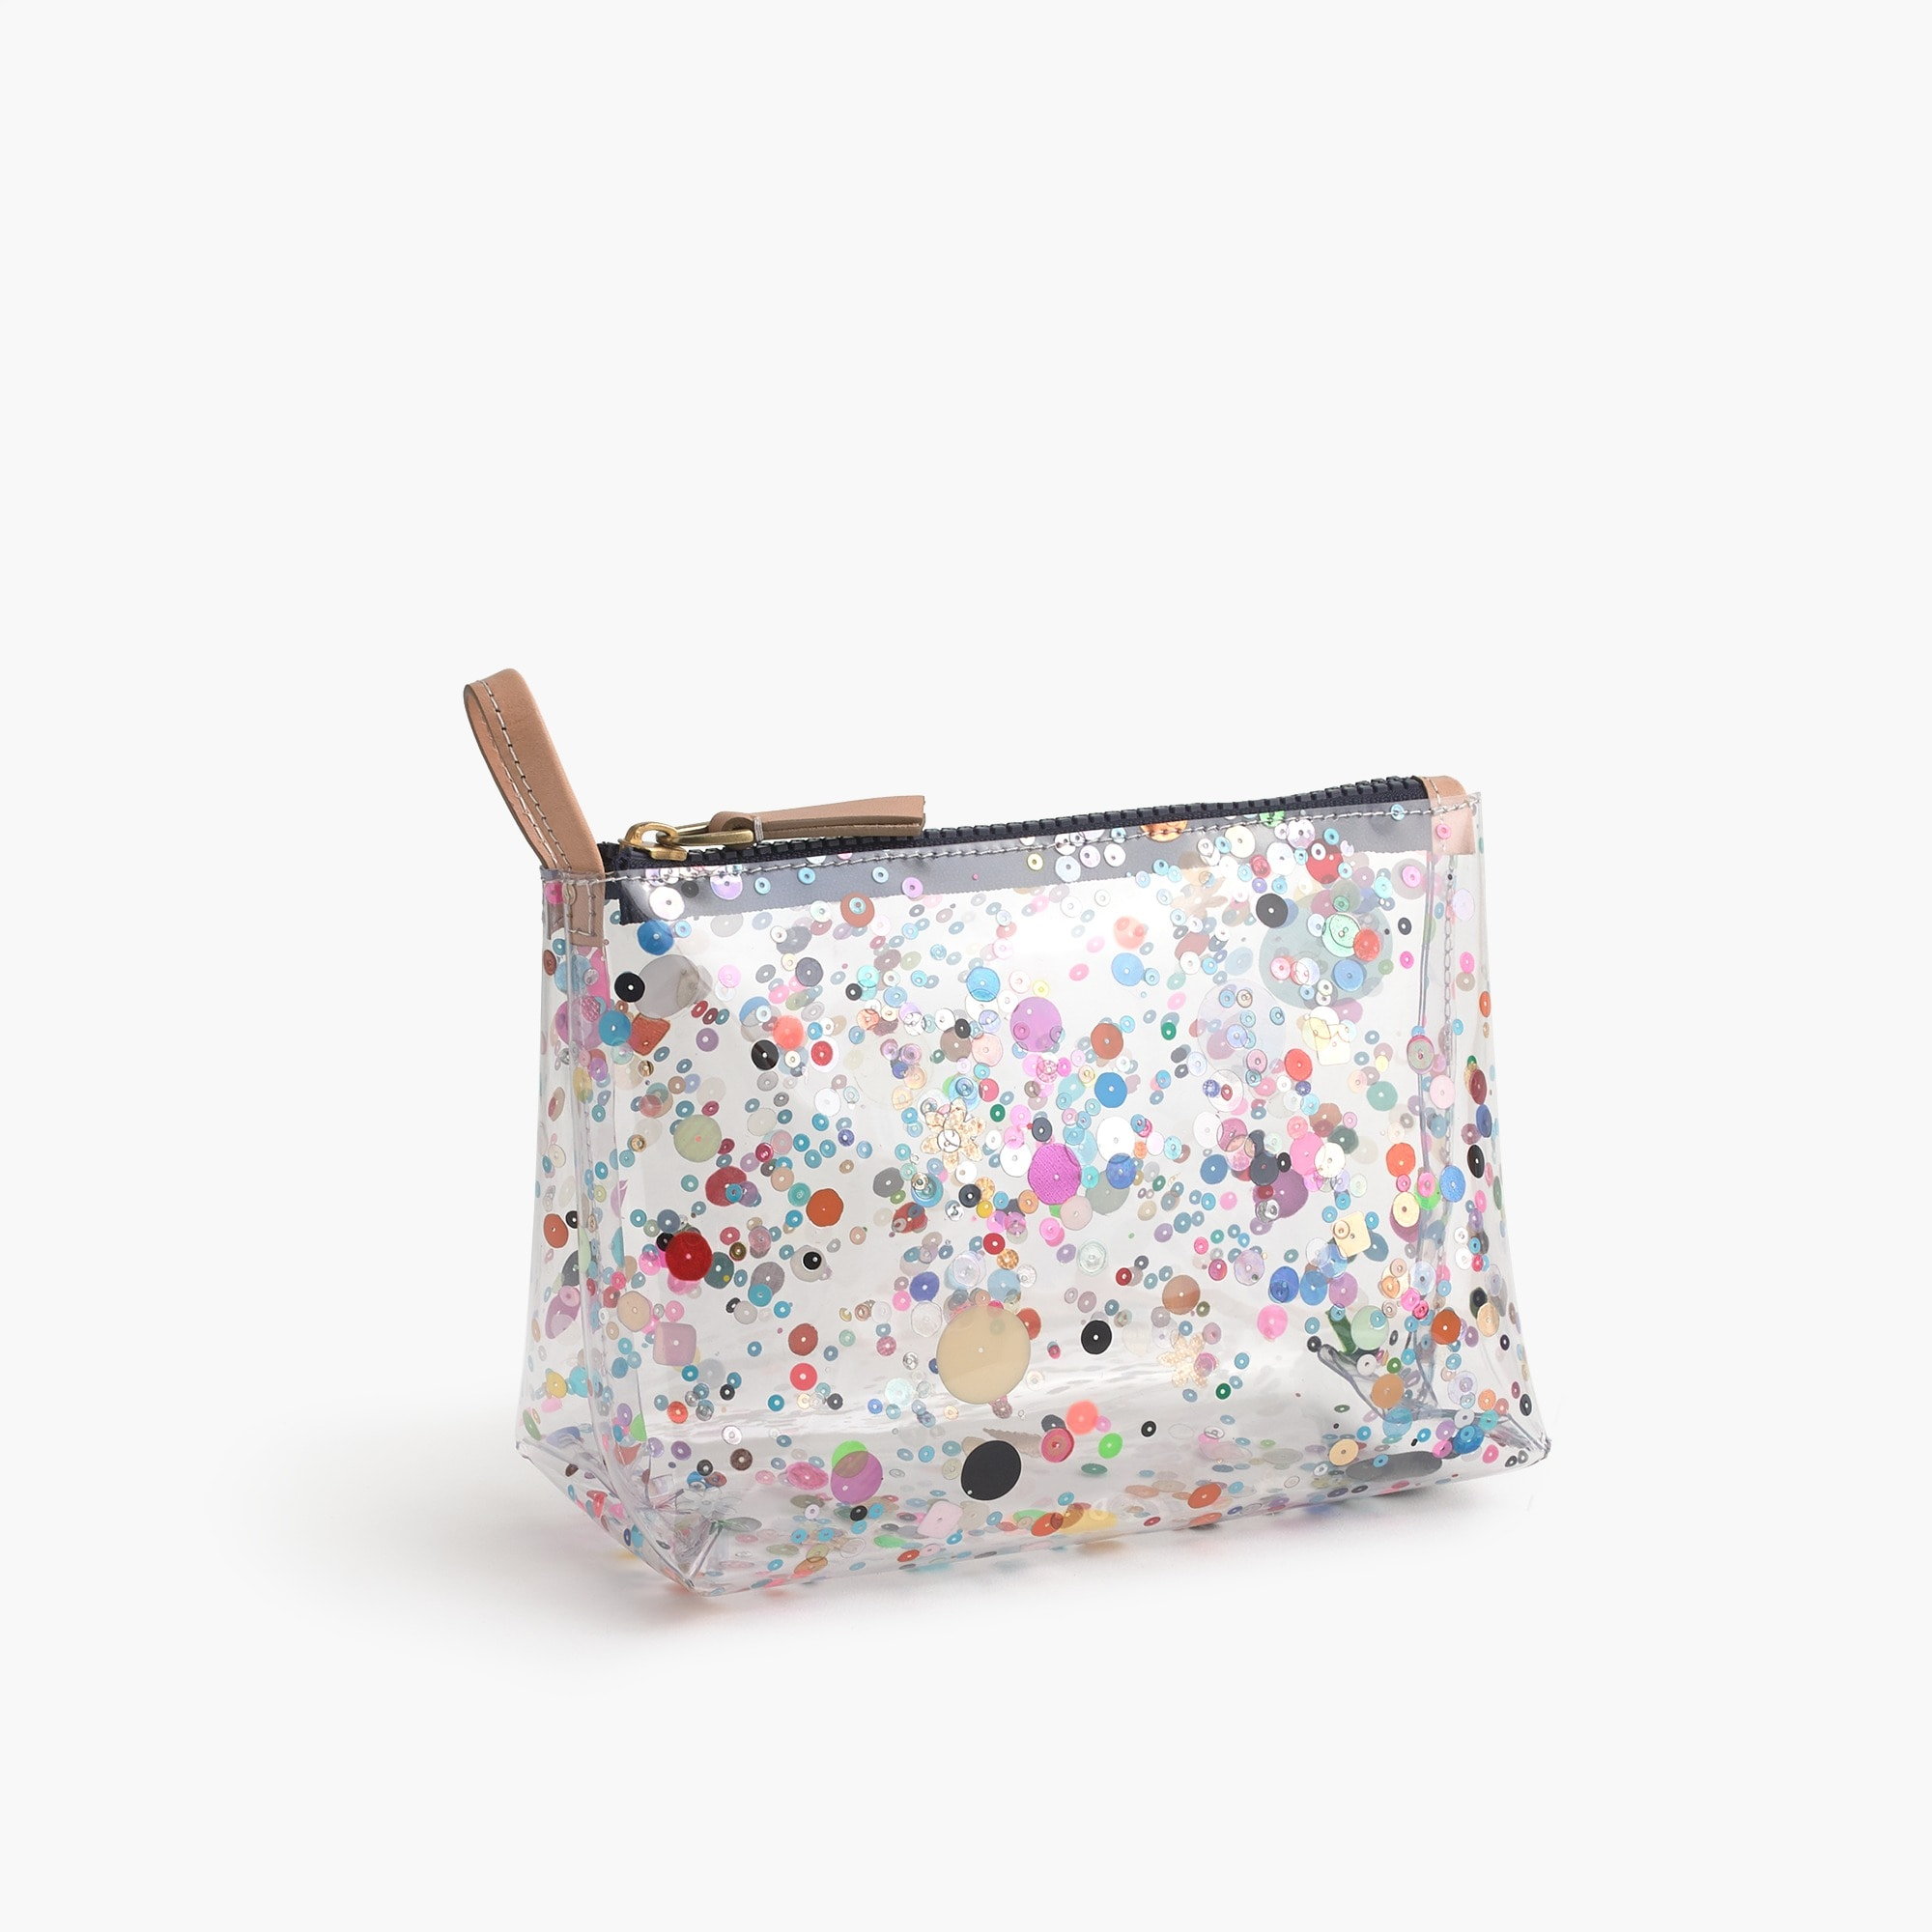 Image 1 for Vinyl makeup pouch with oversize glitter